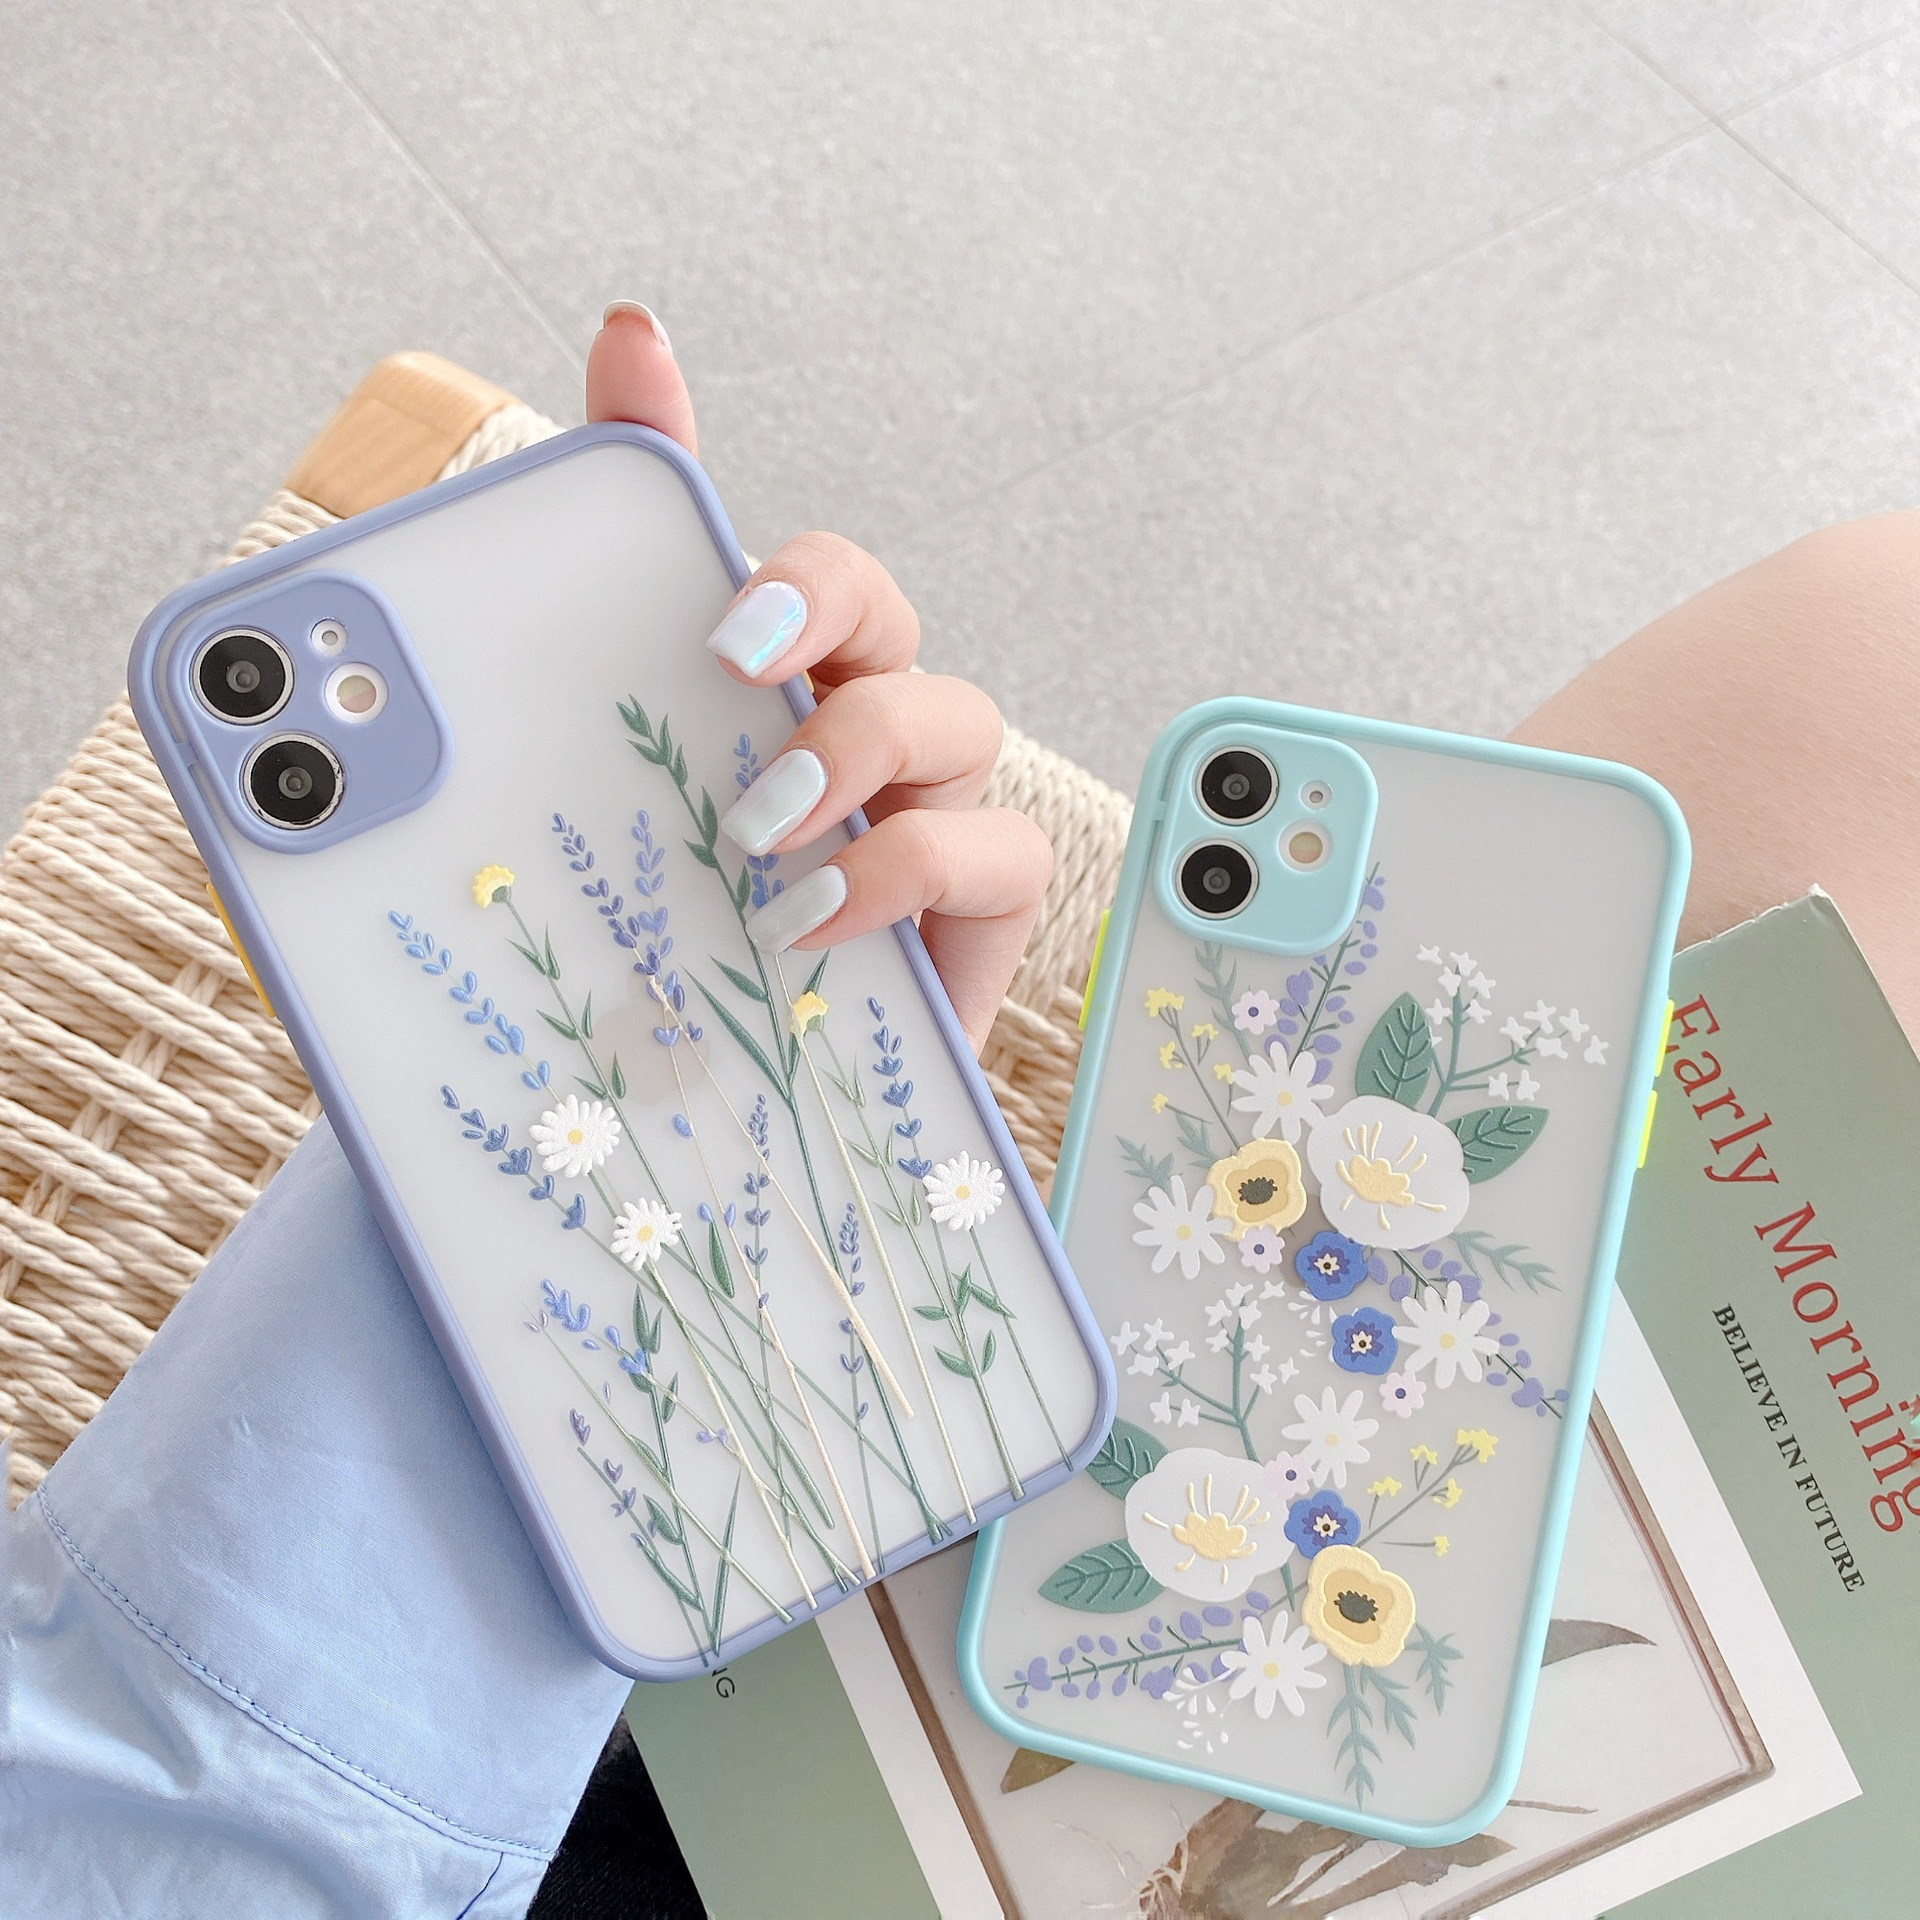 M3C Phone Case For iPhone 11 12 Pro Max Luxury Contrast Color Frame Protective Case For iPhone XS X Max XR 7 8 6 6s Plus SE 2020